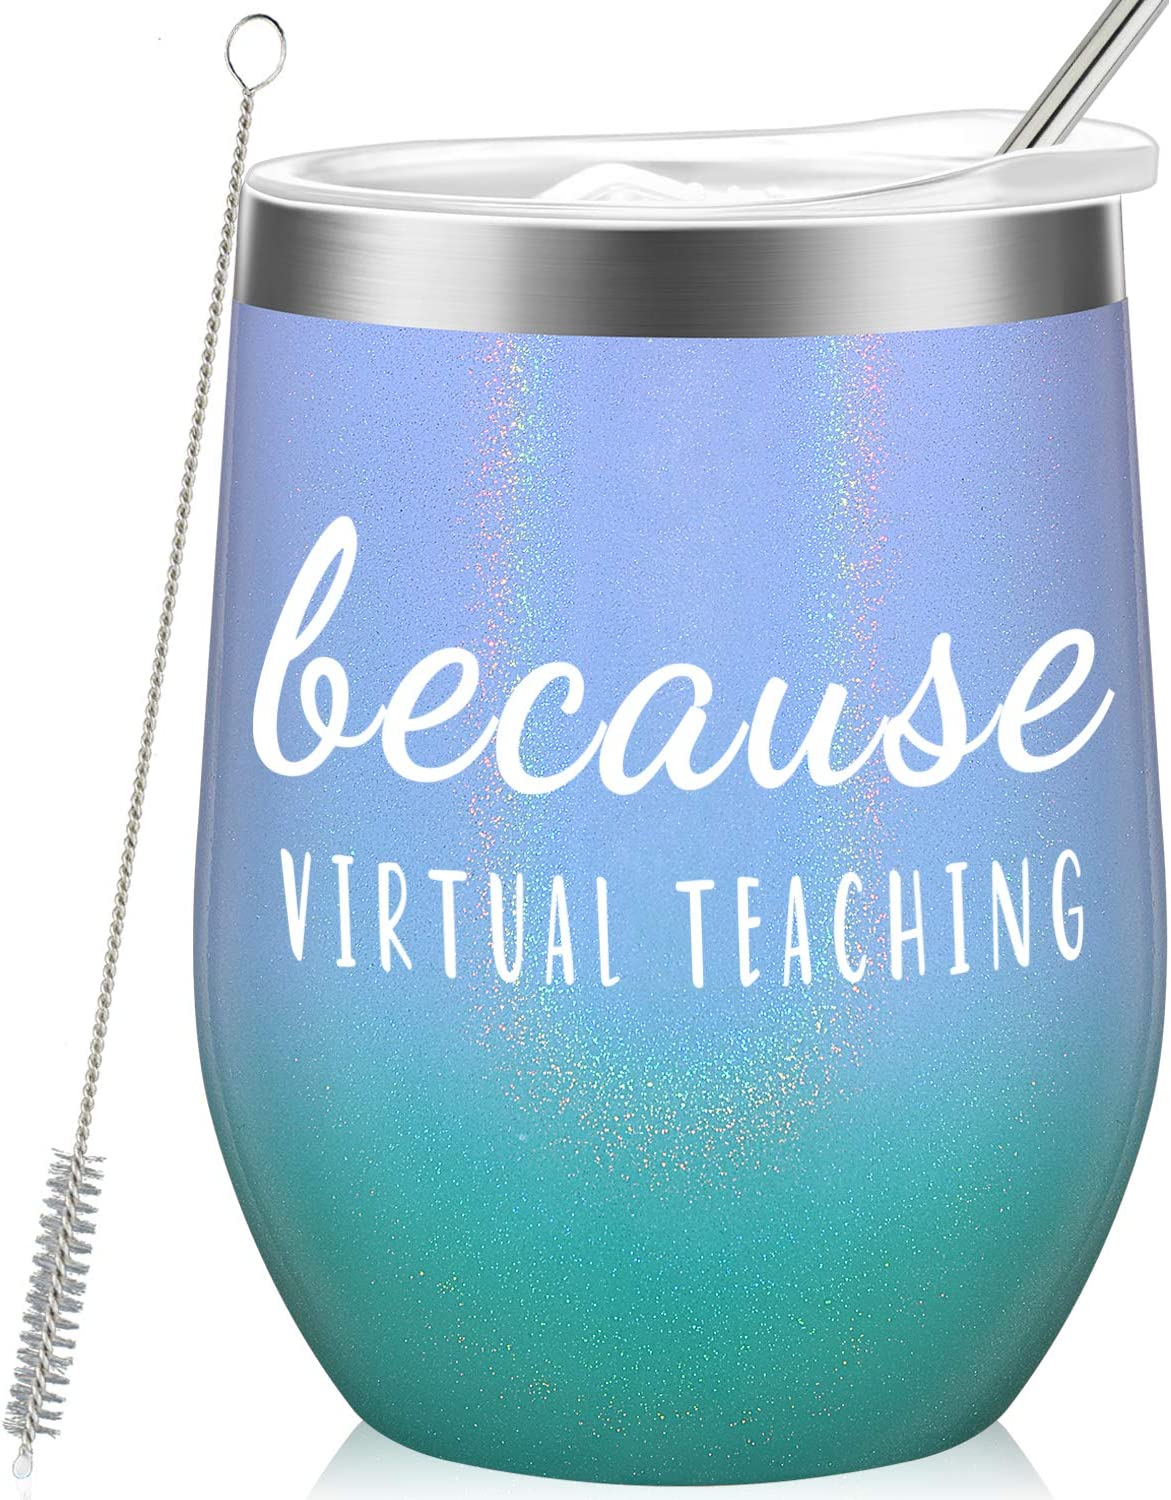 Because Virtual Teaching - Funny Teacher Appreciation or Birthday Gift Idea for Her, Him - Online Learning Gifts for Professor, Teaching Assistant, Instructor - 12oz Wine Tumbler Glitter Mermaid